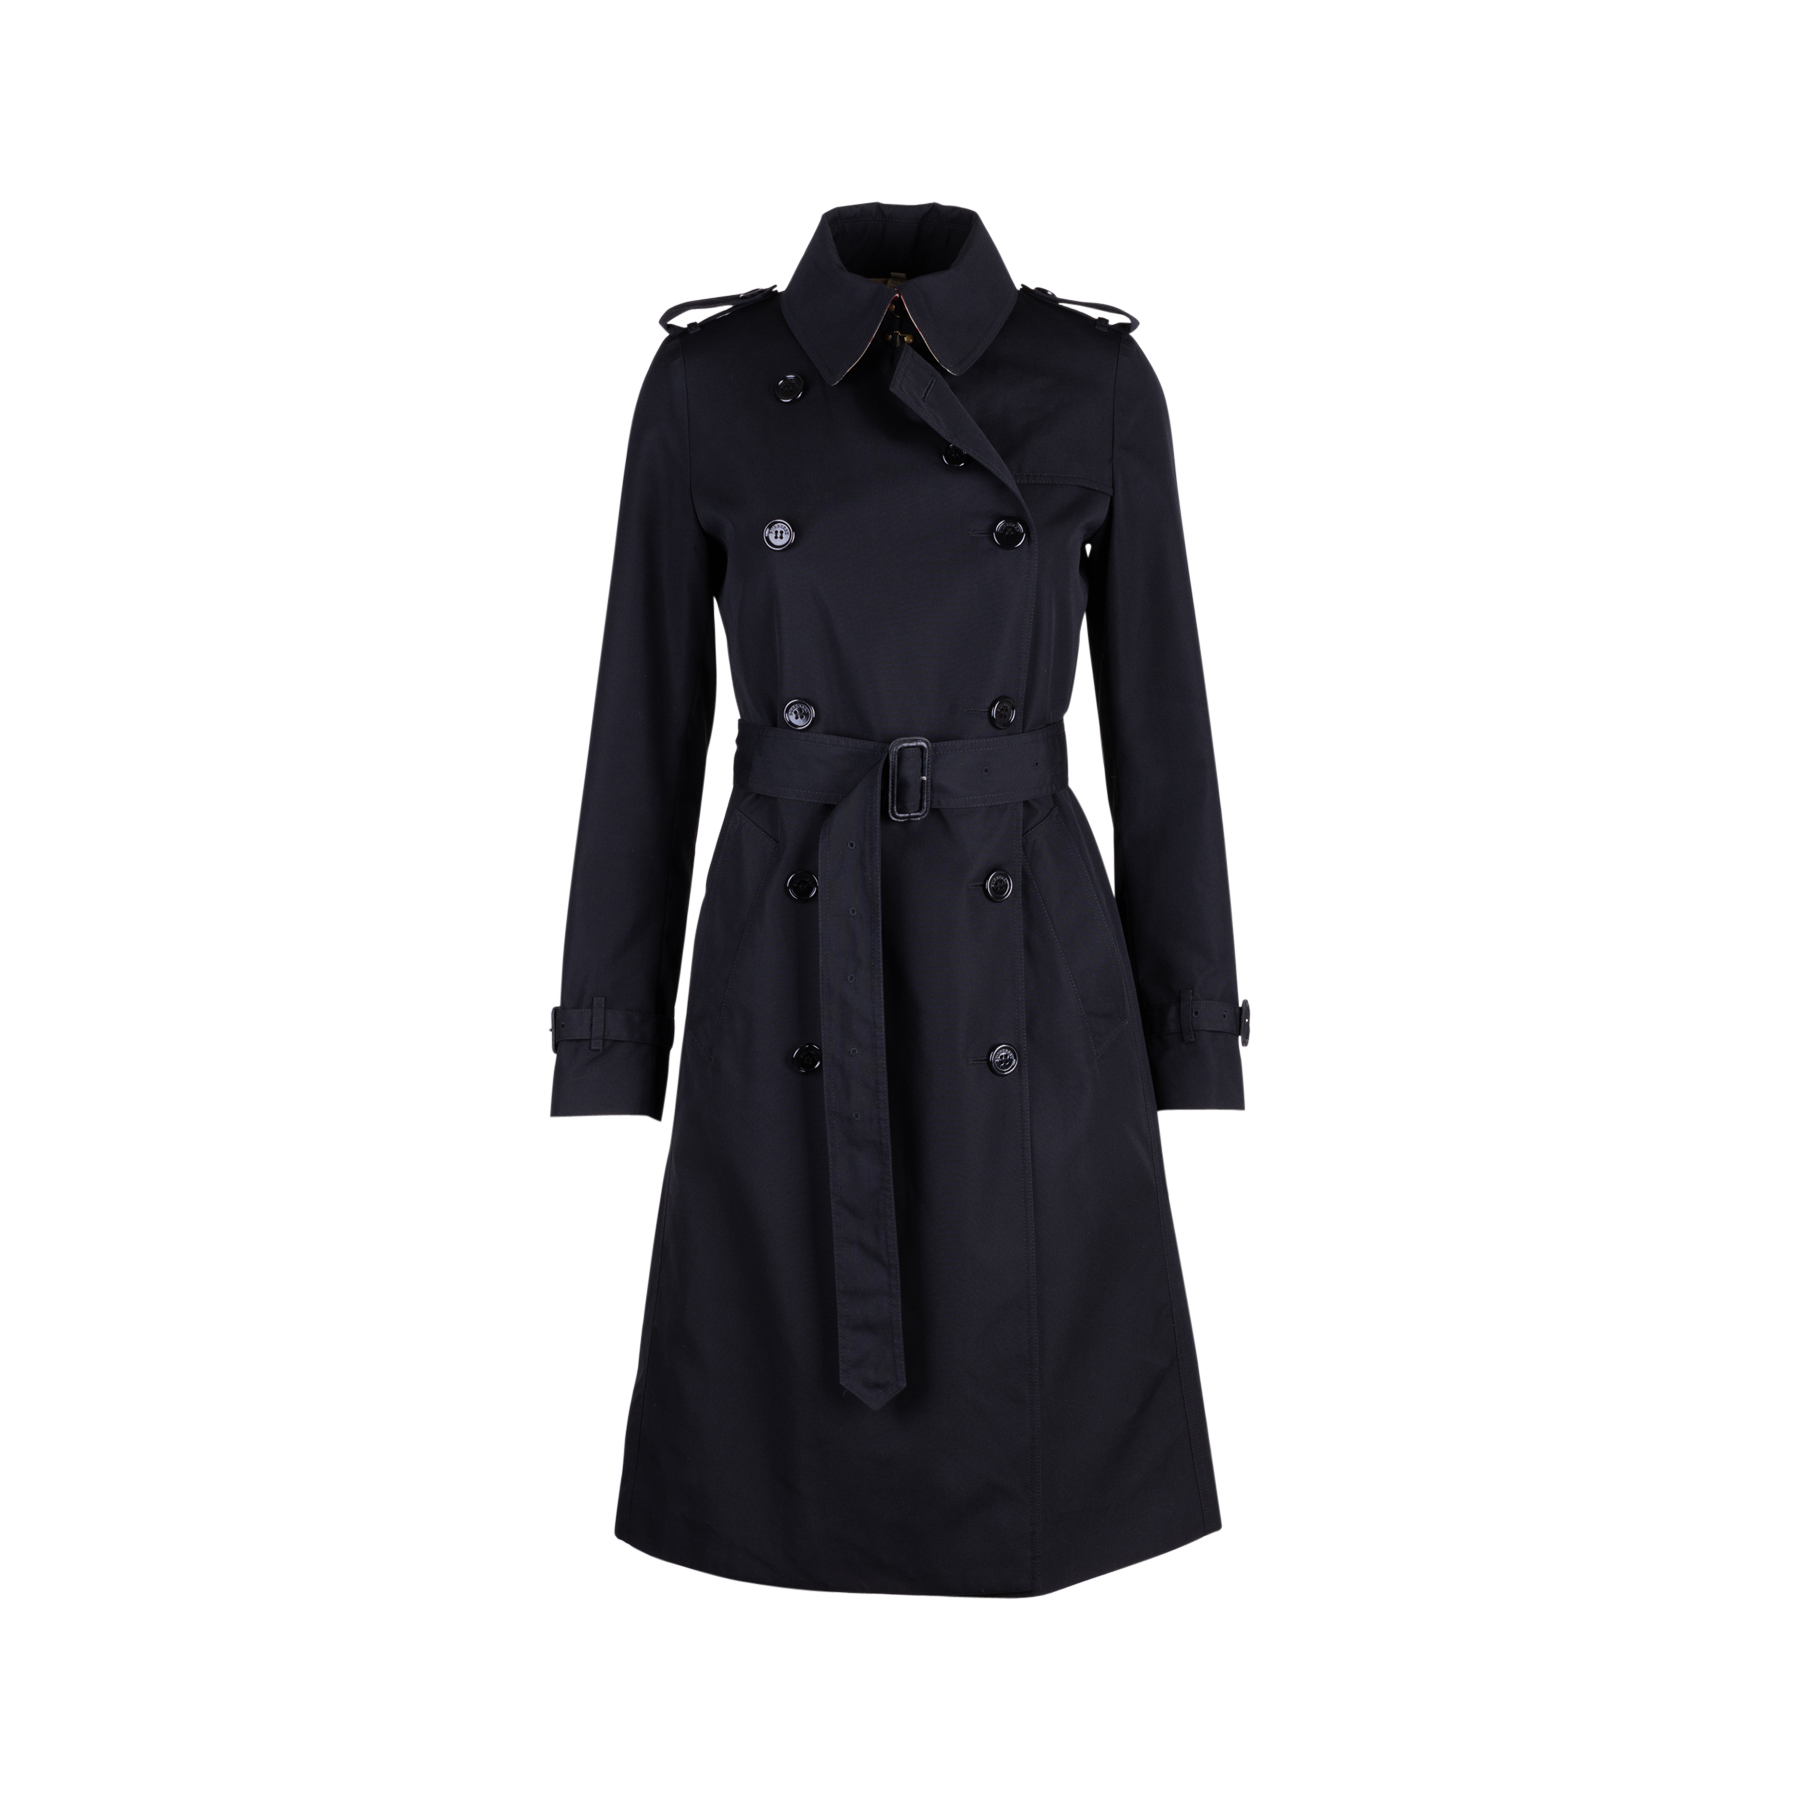 55d6419c64 Authentic Second Hand Burberry Trench Coat (PSS-521-00020) - THE FIFTH  COLLECTION